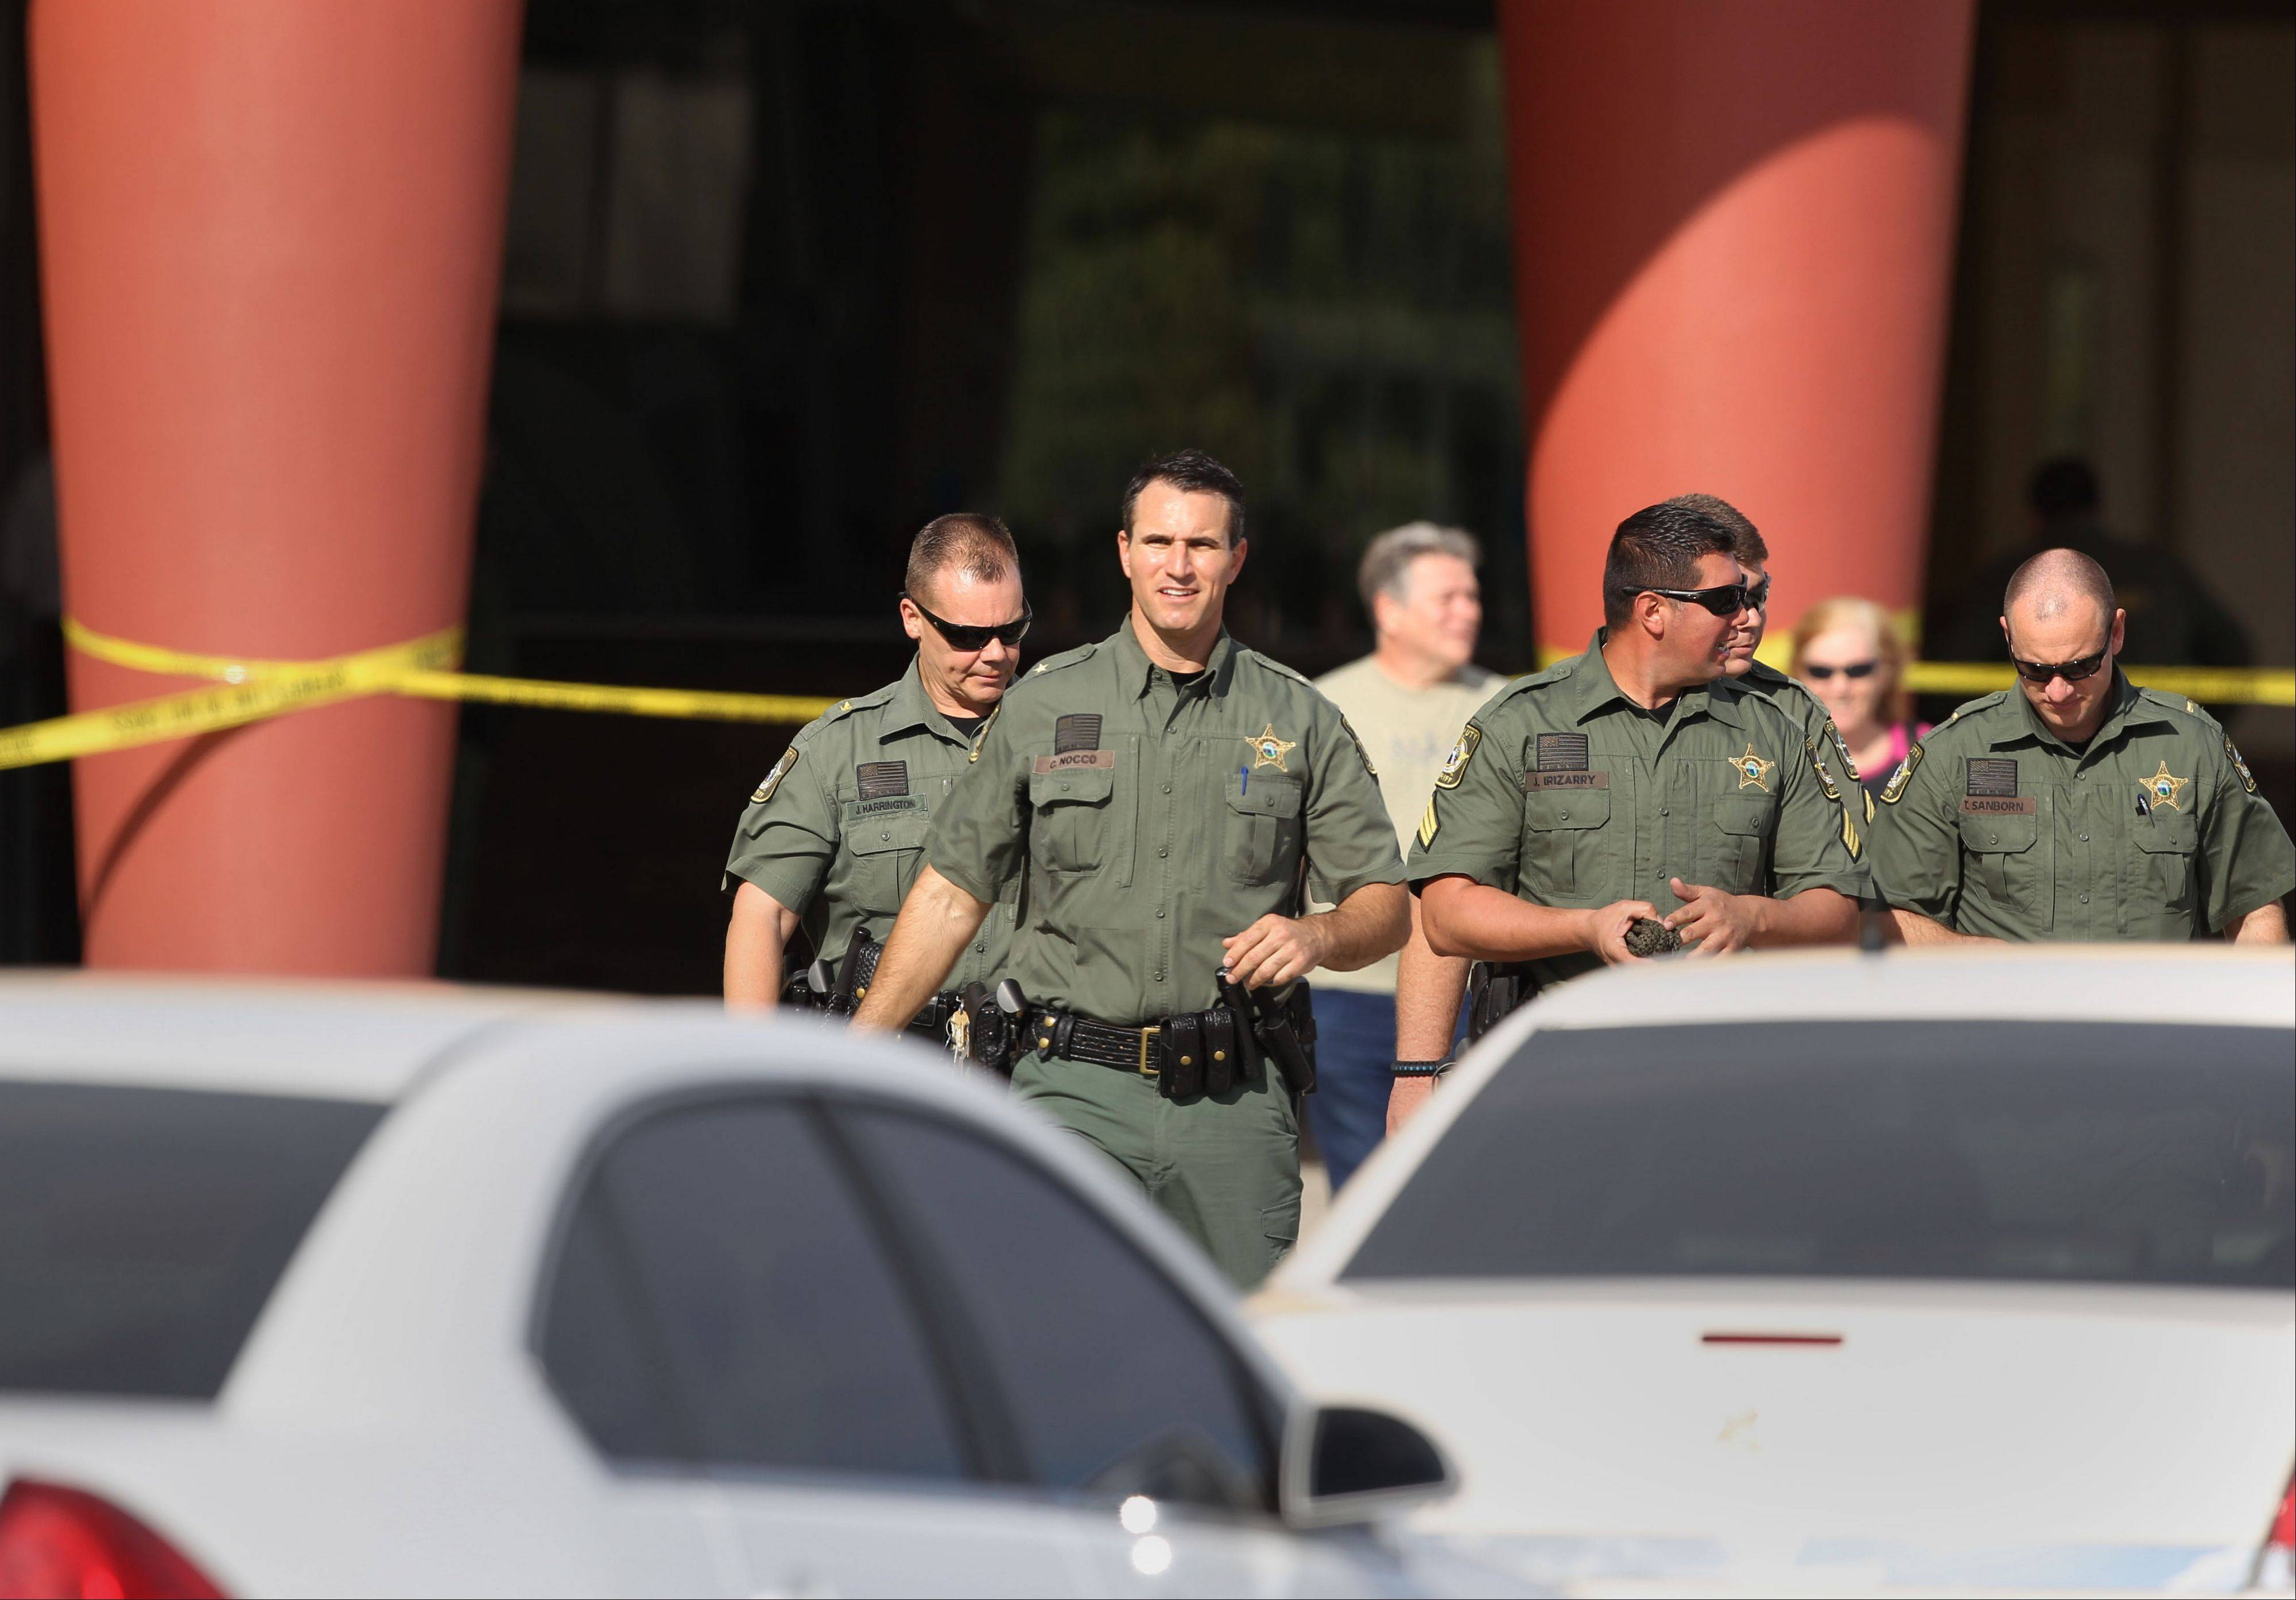 Pasco Sheriff Chris Nocco, front, walks out to update reporters after an argument between patrons over texting sparked a shooting that left one person dead and another injured in a Pasco County movie theater Monday Jan. 13, 2014, sheriff's officials said.